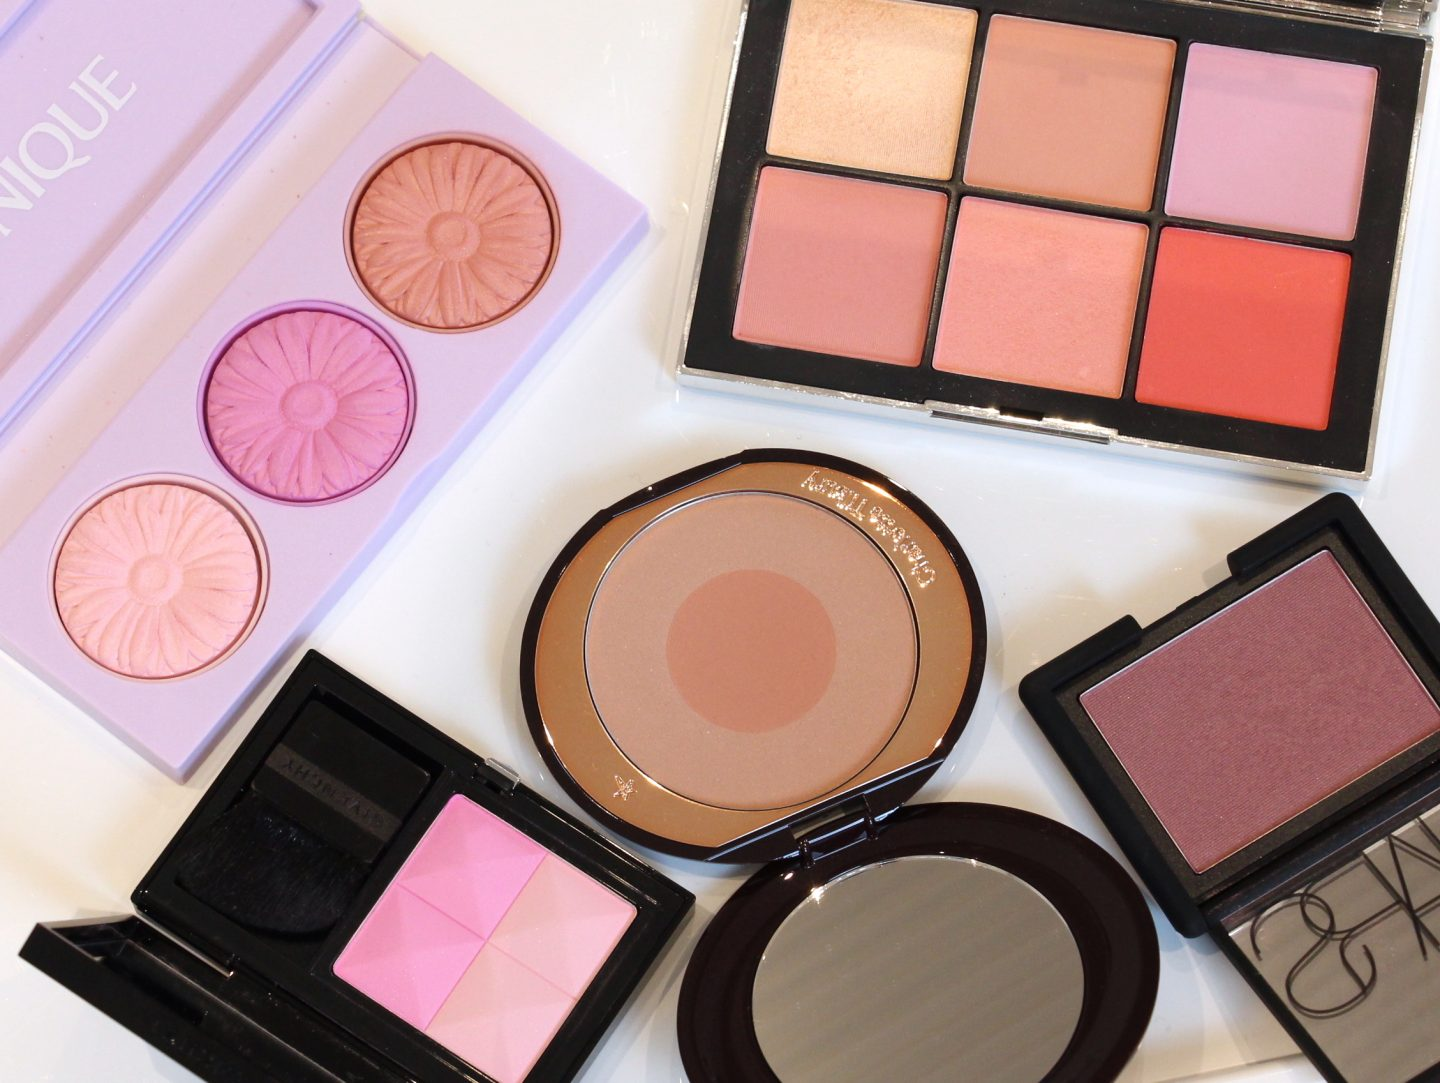 Blush Favourites: Nars Wanted I Cheek Palette, Nars Sin Blush, Givenchy Prisme Blush 02 Love, Charlotte Tilbury Cheek to Chic Swish and Pop Blusher First Love, Clinique Cheek Pop Palette: Cool Down, Shades: Ballerina Pop, Pansy Pop, Heather Pop